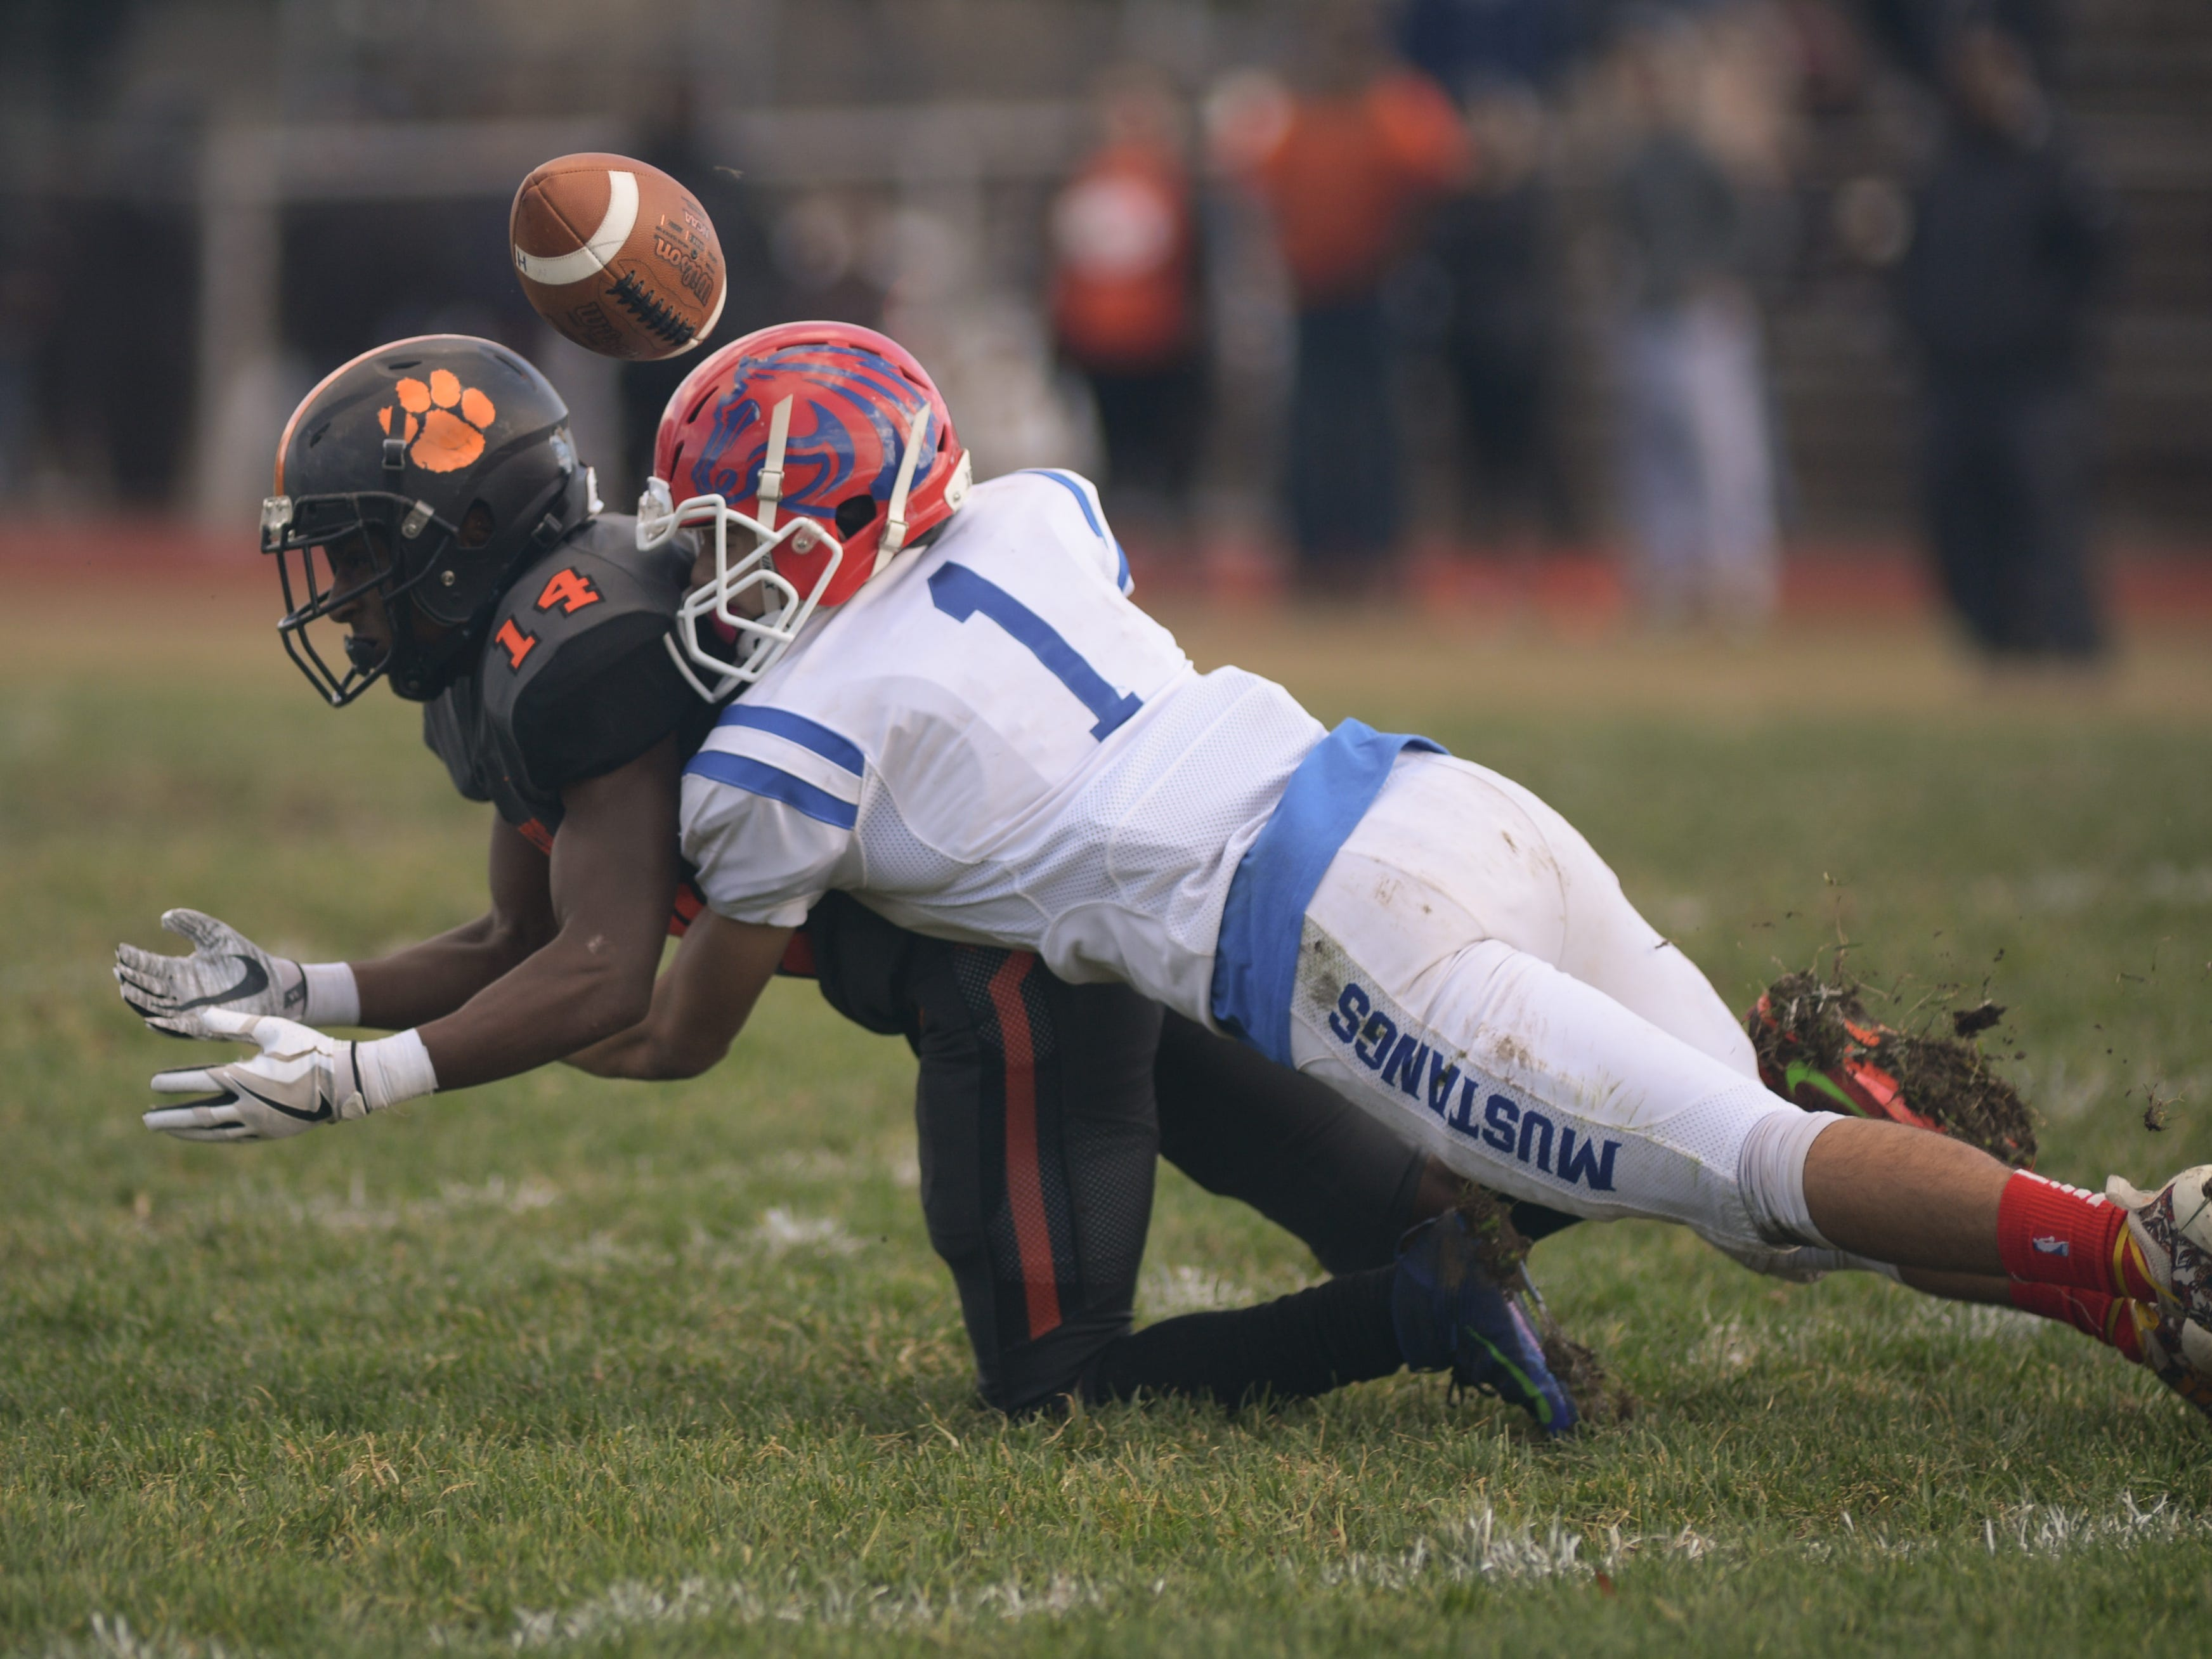 Triton's Joe Rubba breaks up a pass intended for Woodrow Wilson's Shyfula Corbin during Saturday's South Jersey Group 3 first round game at Woodrow Wilson High School, Nov. 3, 2018.